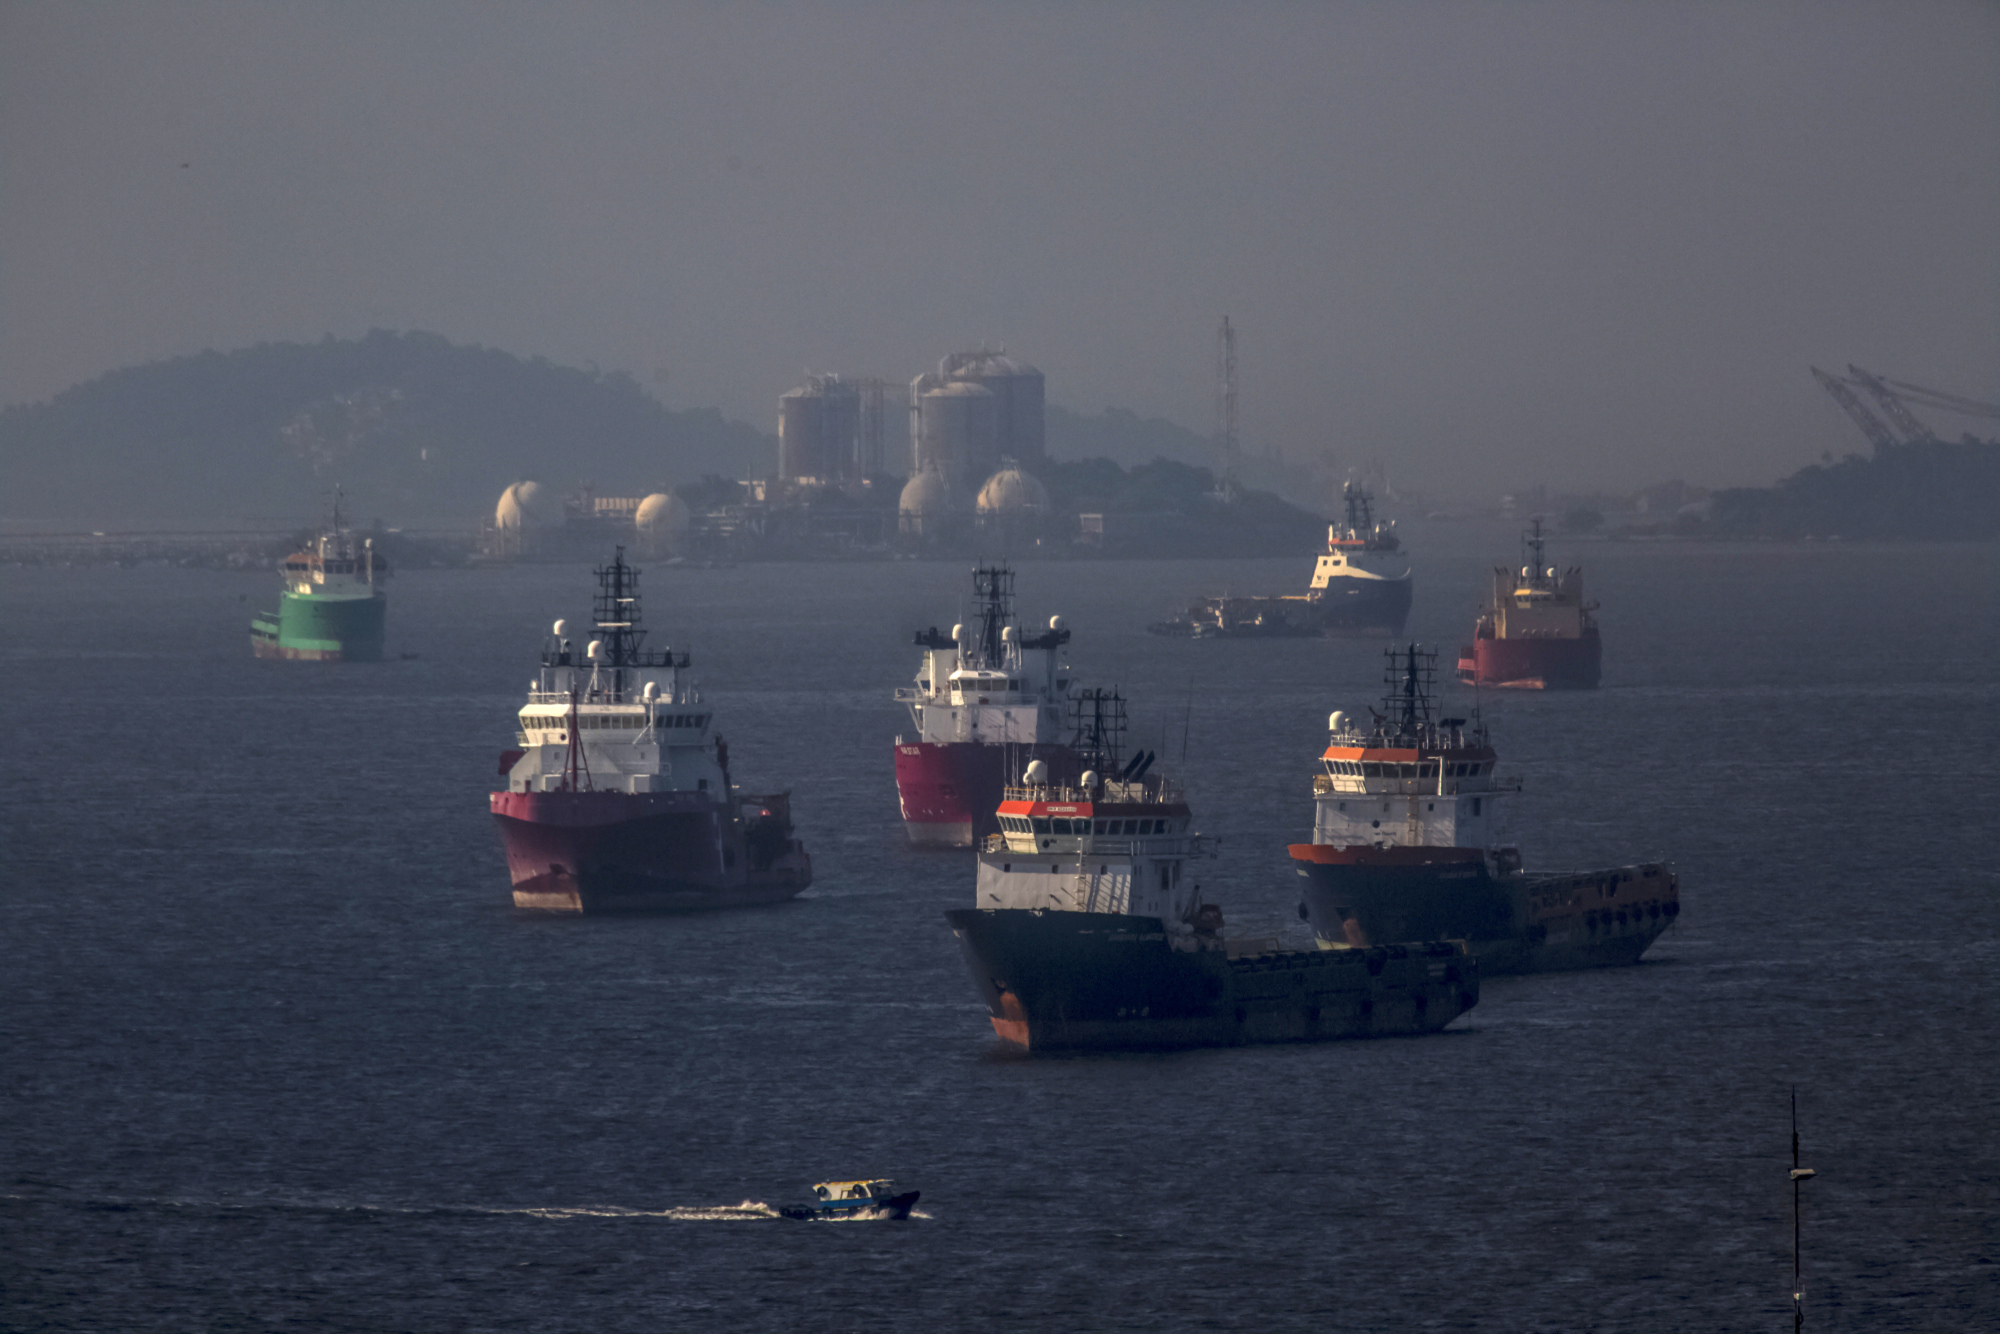 Idle supply vessels float in Guanabara Bay in front of a gas storage facility across from Petrobras's Comperj oil refinery in Rio de Janeiro, Brazil. Photographer: Dado Galdieri